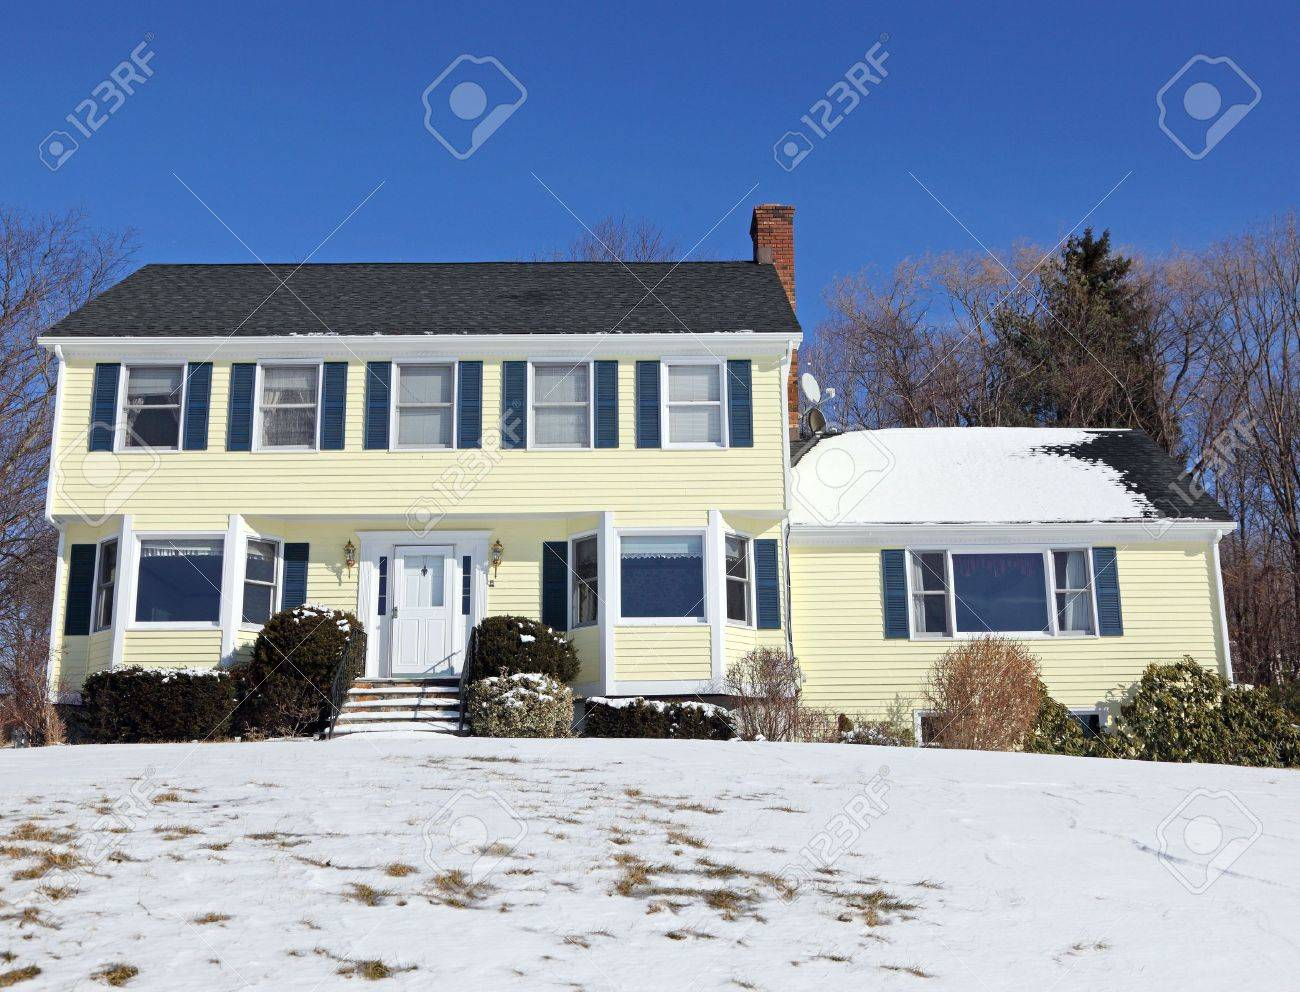 Traditional American colonial style house in winter Stock Photo - 6458965